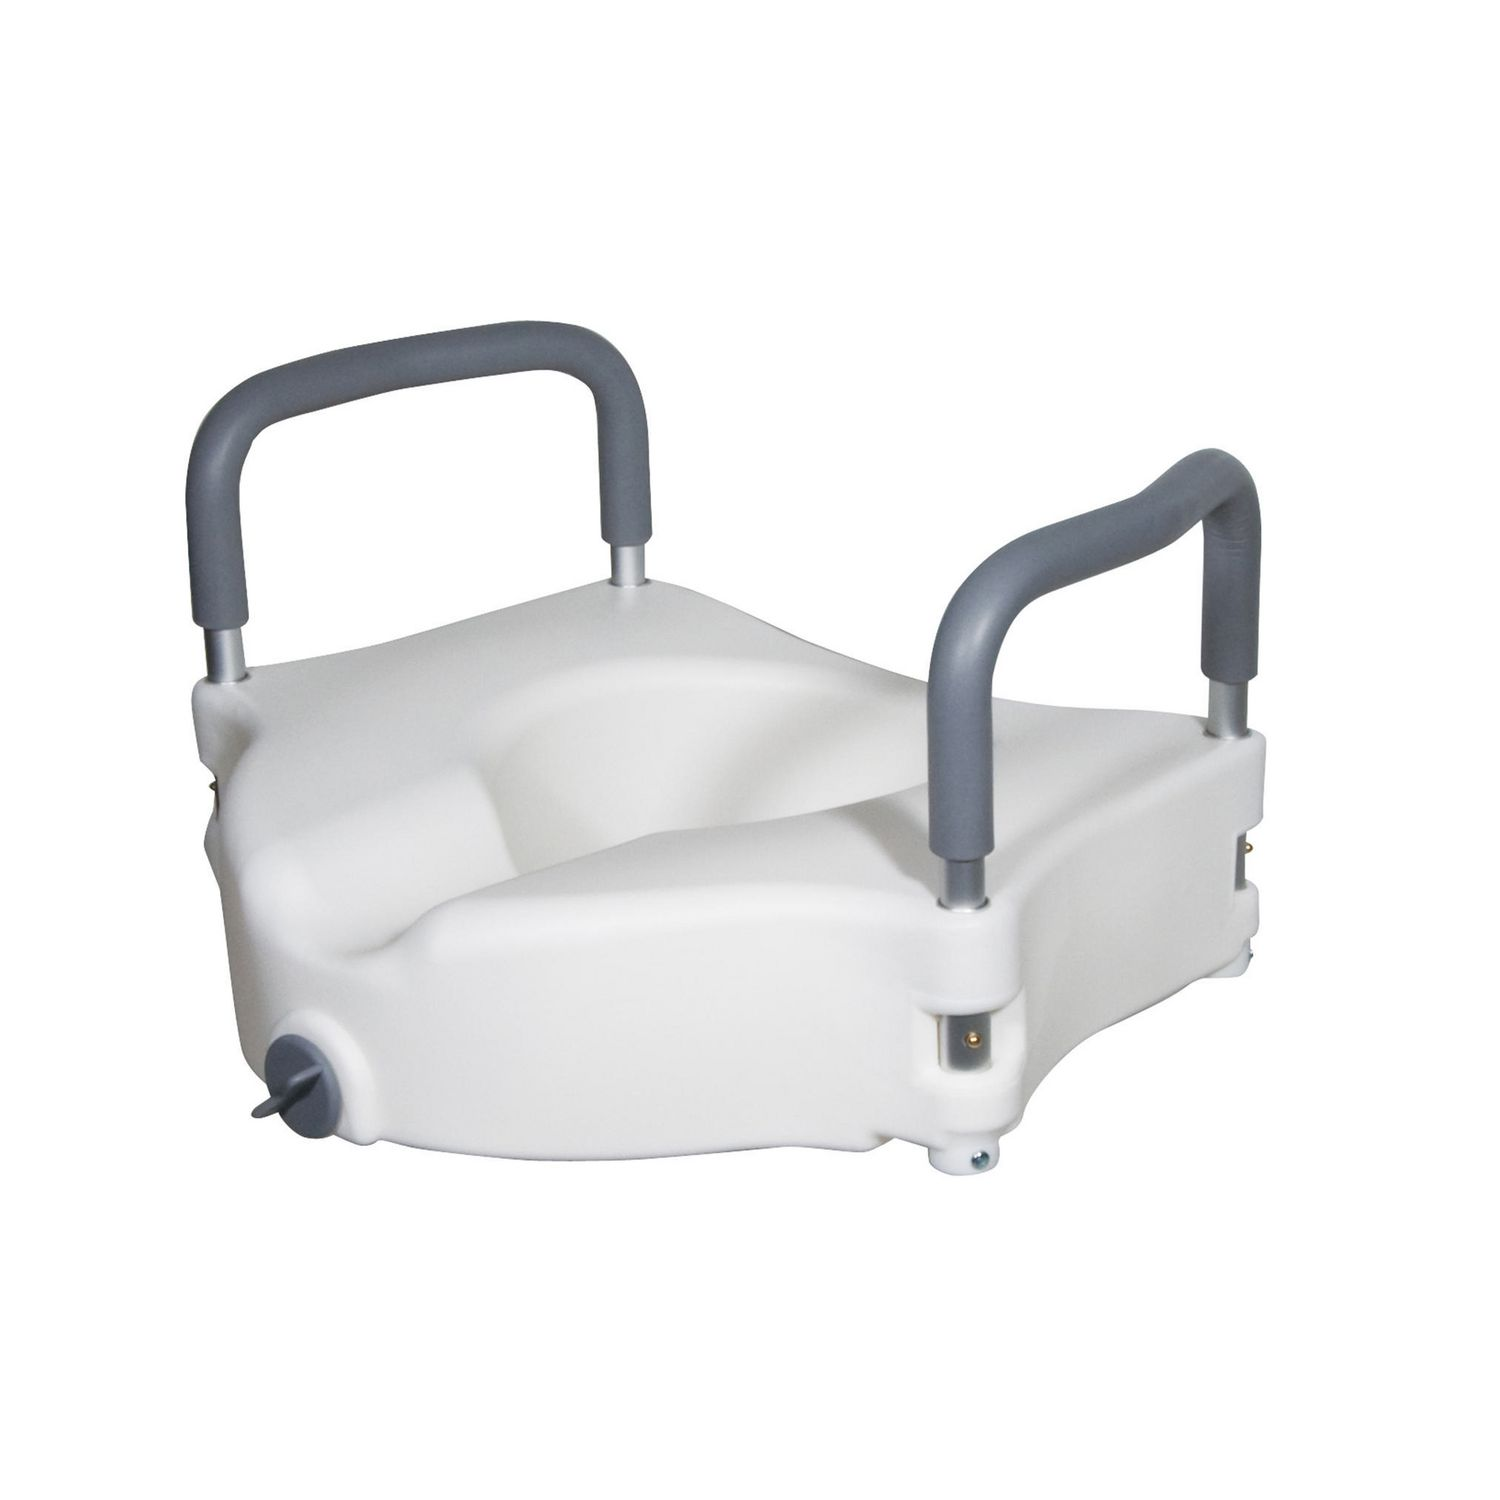 Mobility Aids, Safety Bars, & Other Mobility Aids at Walmart.ca